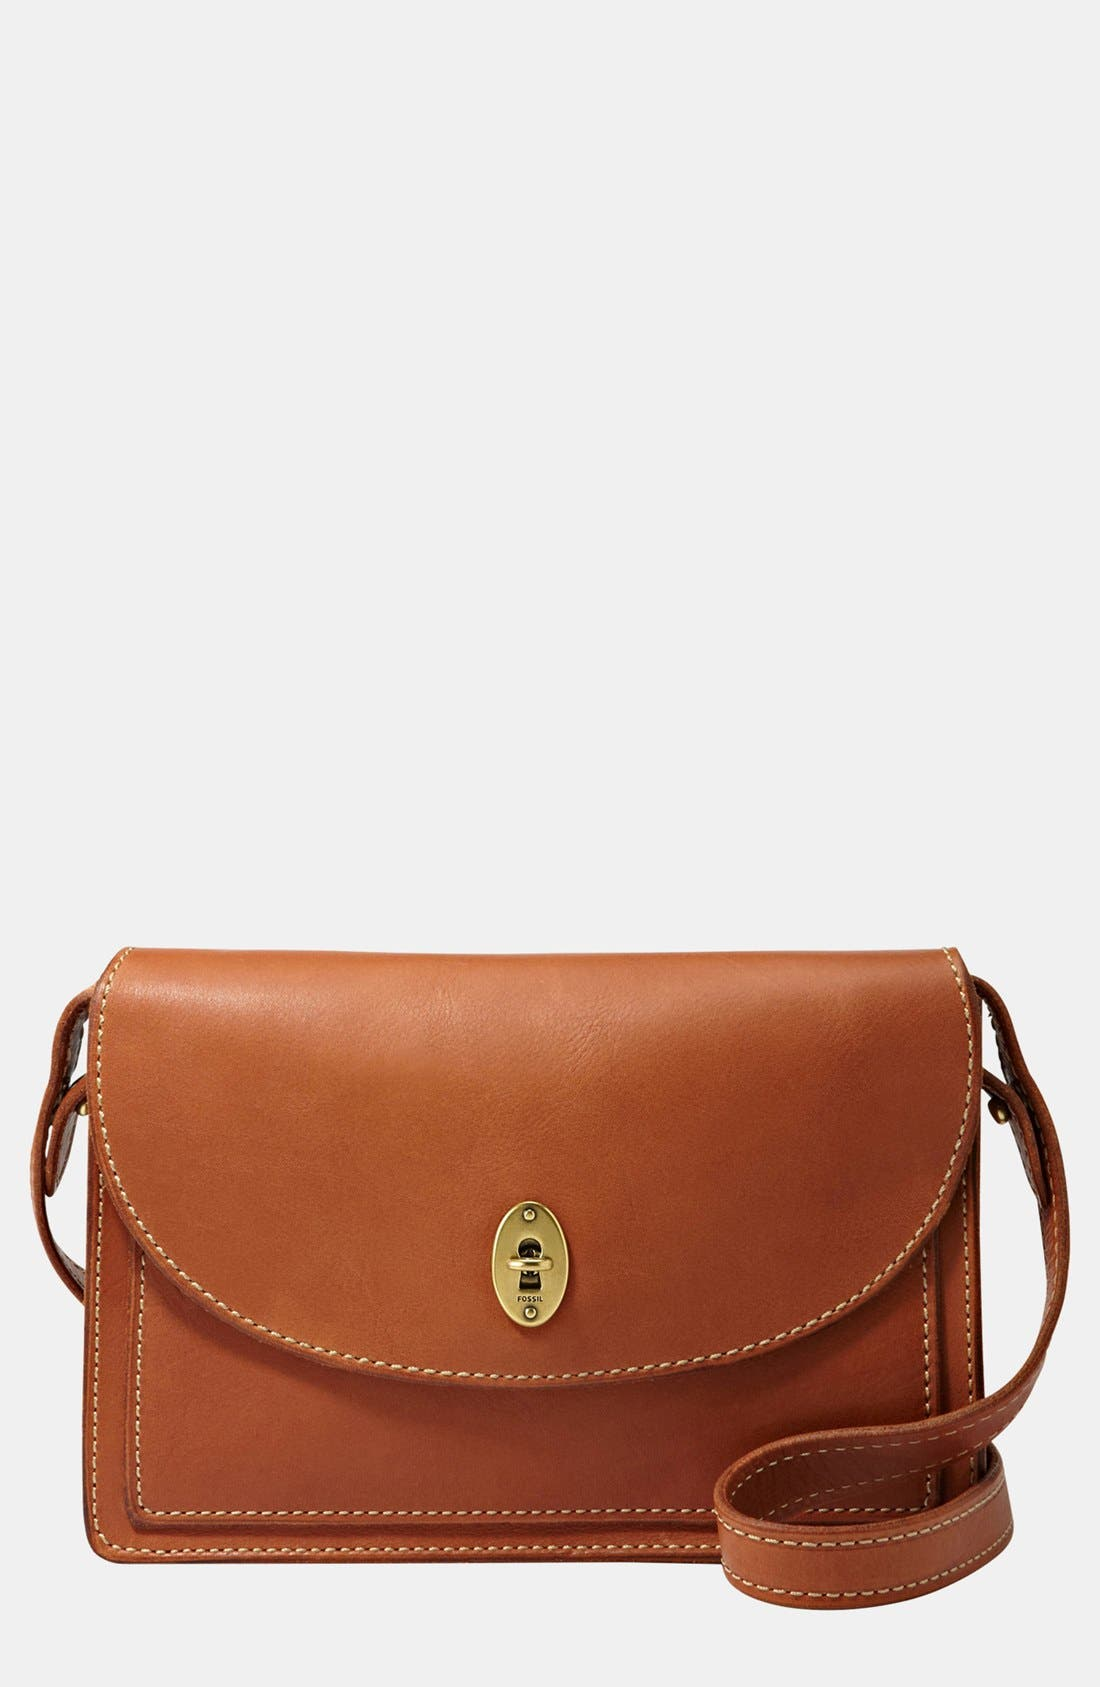 Alternate Image 1 Selected - Fossil 'Austin' Convertible Leather Clutch